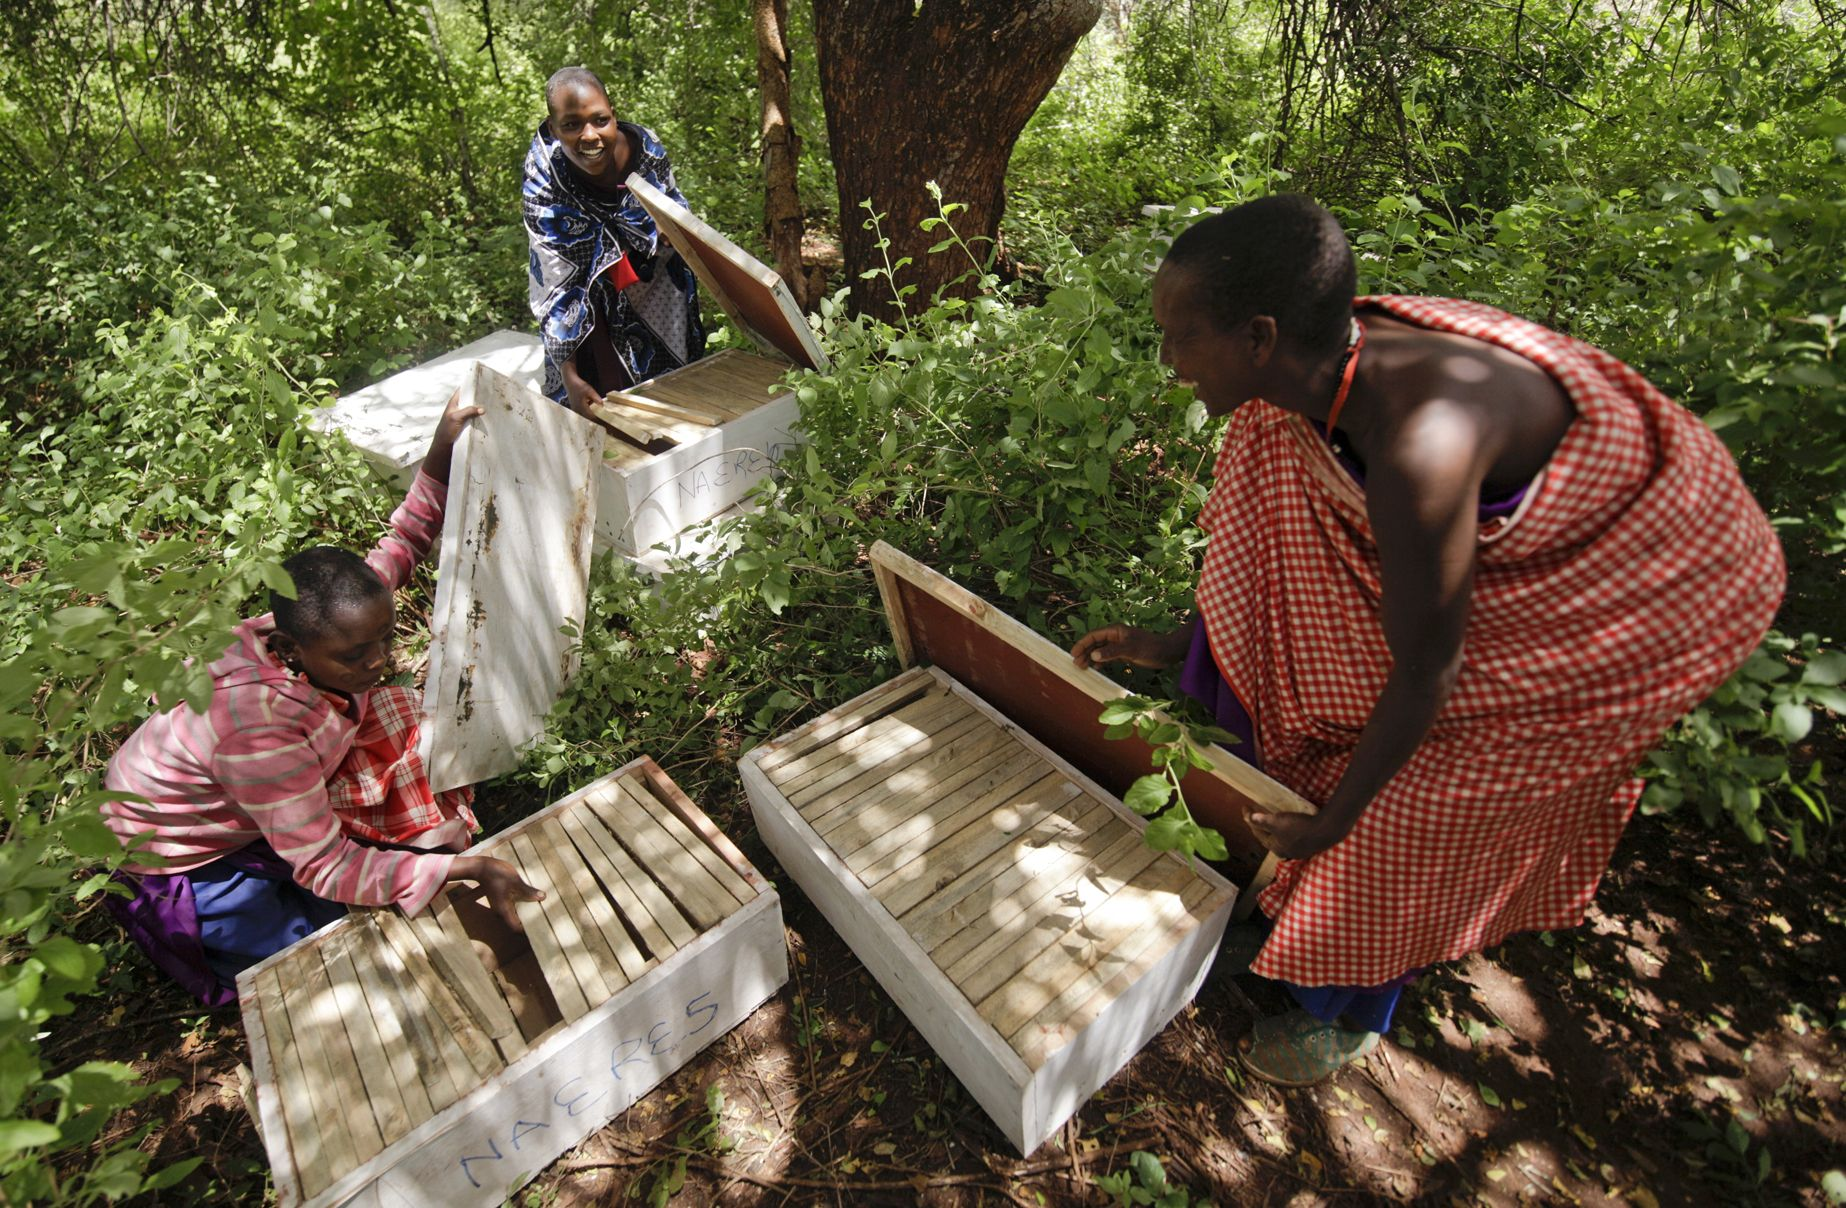 Maasai women in APW's Women's Beekeeping Initiative prepare to hang hives.